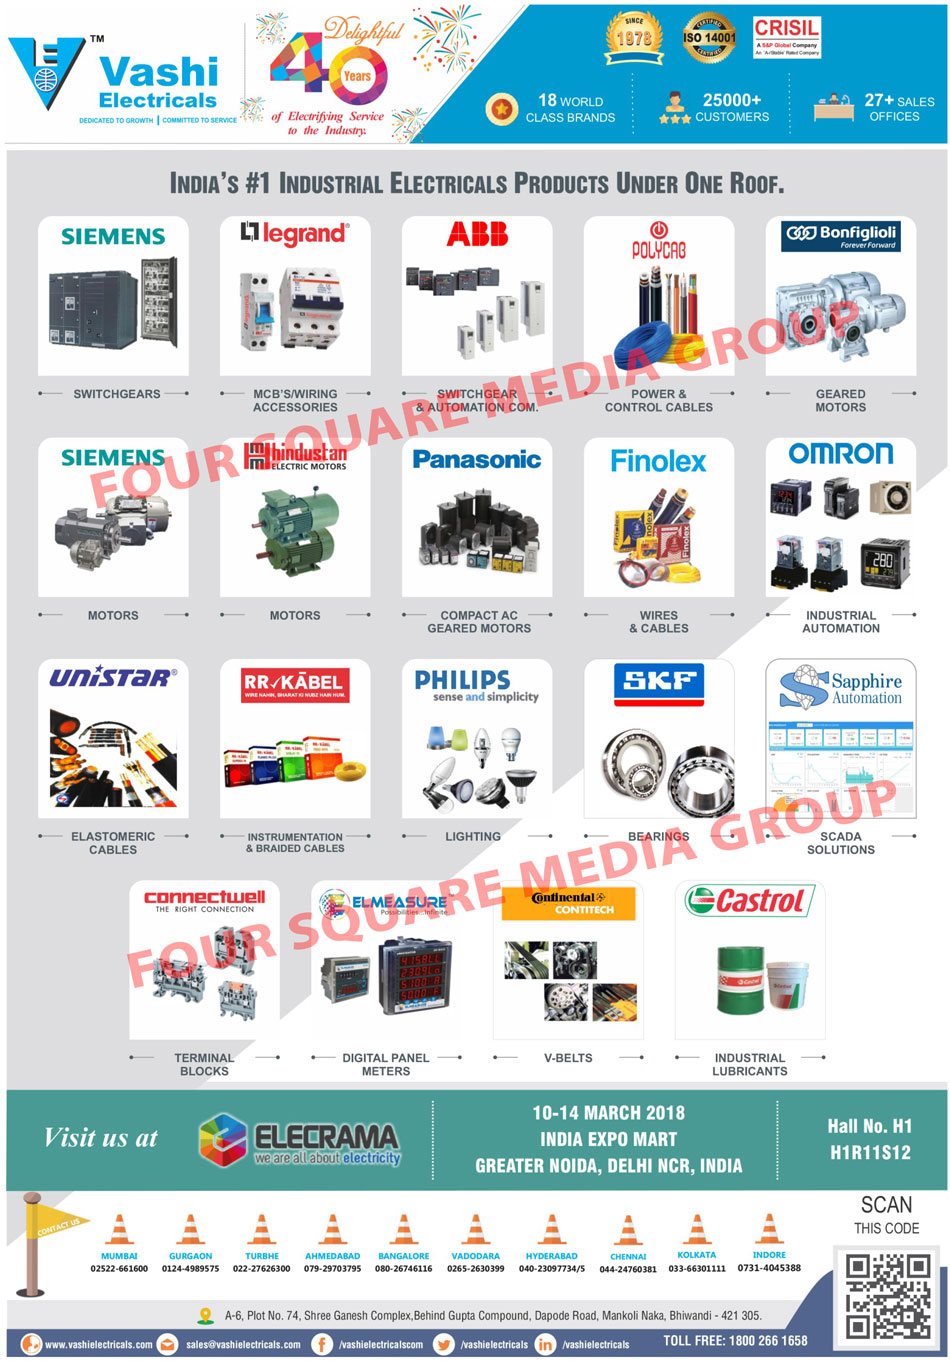 Switchgear, Geared Motors, MCBs, Wiring Accessories, Electric Motors, Active Harmonic Filters, Elastomeric Cables, Industrial Lubricants, Power Tools, Compact Ac Geared Motors, Lighting, Terminal Blocks, Wires, Cables, Fuses, Compact Modular Fuses, Photovoltaic Fuses, Low Voltage Fuses, Medium Voltage Fuses, Ammeters, Voltmeters, VAF Meters, Load Managers, Energy Meters, Dual Source Energy Meters, Generator Monitoring Units, Data Loggers, High Profile Power Analysers, Intelligent Earth Leakage Relays, IELR, Intelligent Power Factor Controllers, IPFC, Industrial Lights, High Bay Lights, Well Glass Lights, Bulk Head Lights, Outdoor Lights, Flood Lights, Street Lights, Post Top Lights, Bollards, Master Led Spot MV, Solar Power Solutions, Solar Street Lights, Solar Water Heaters, Solar Thermal Water Heaters, Solar PV System Integration, Drives, Power Cables, Control Cables, Instrumentation Cables, Braided Cables, Rolling Bearings, Digital Panel Meters, Industrial Automation